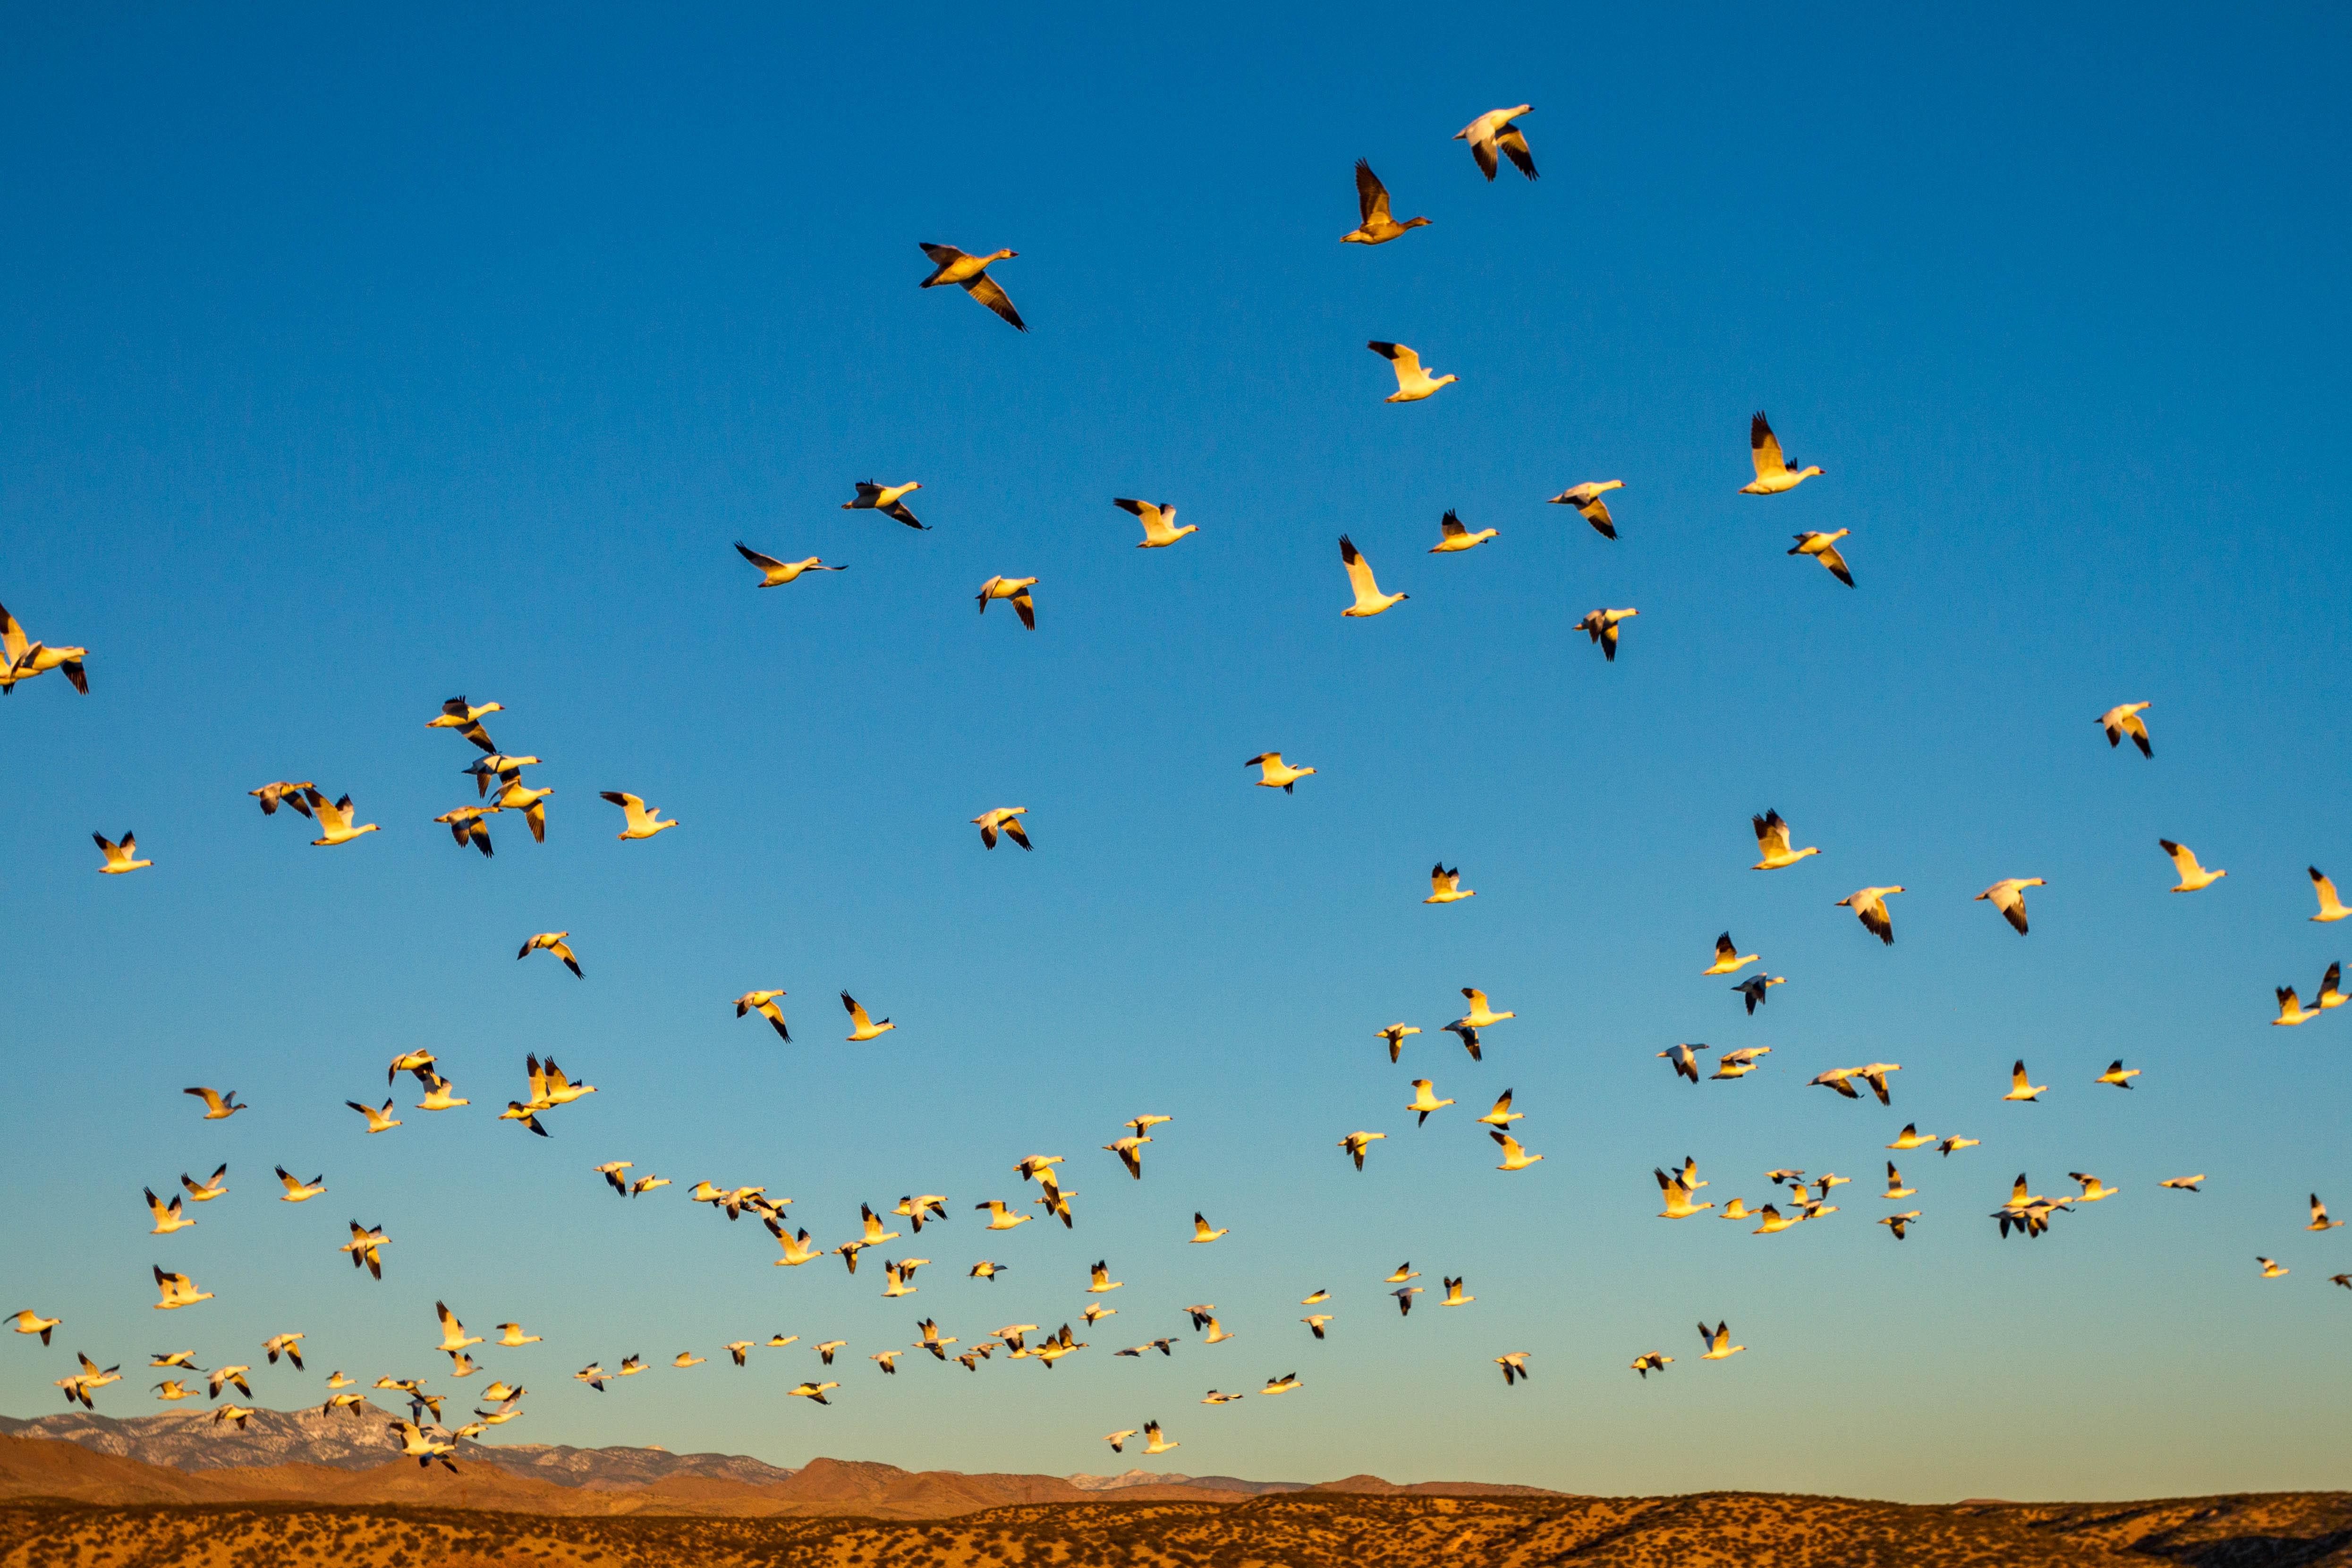 Snow Geese Ascending